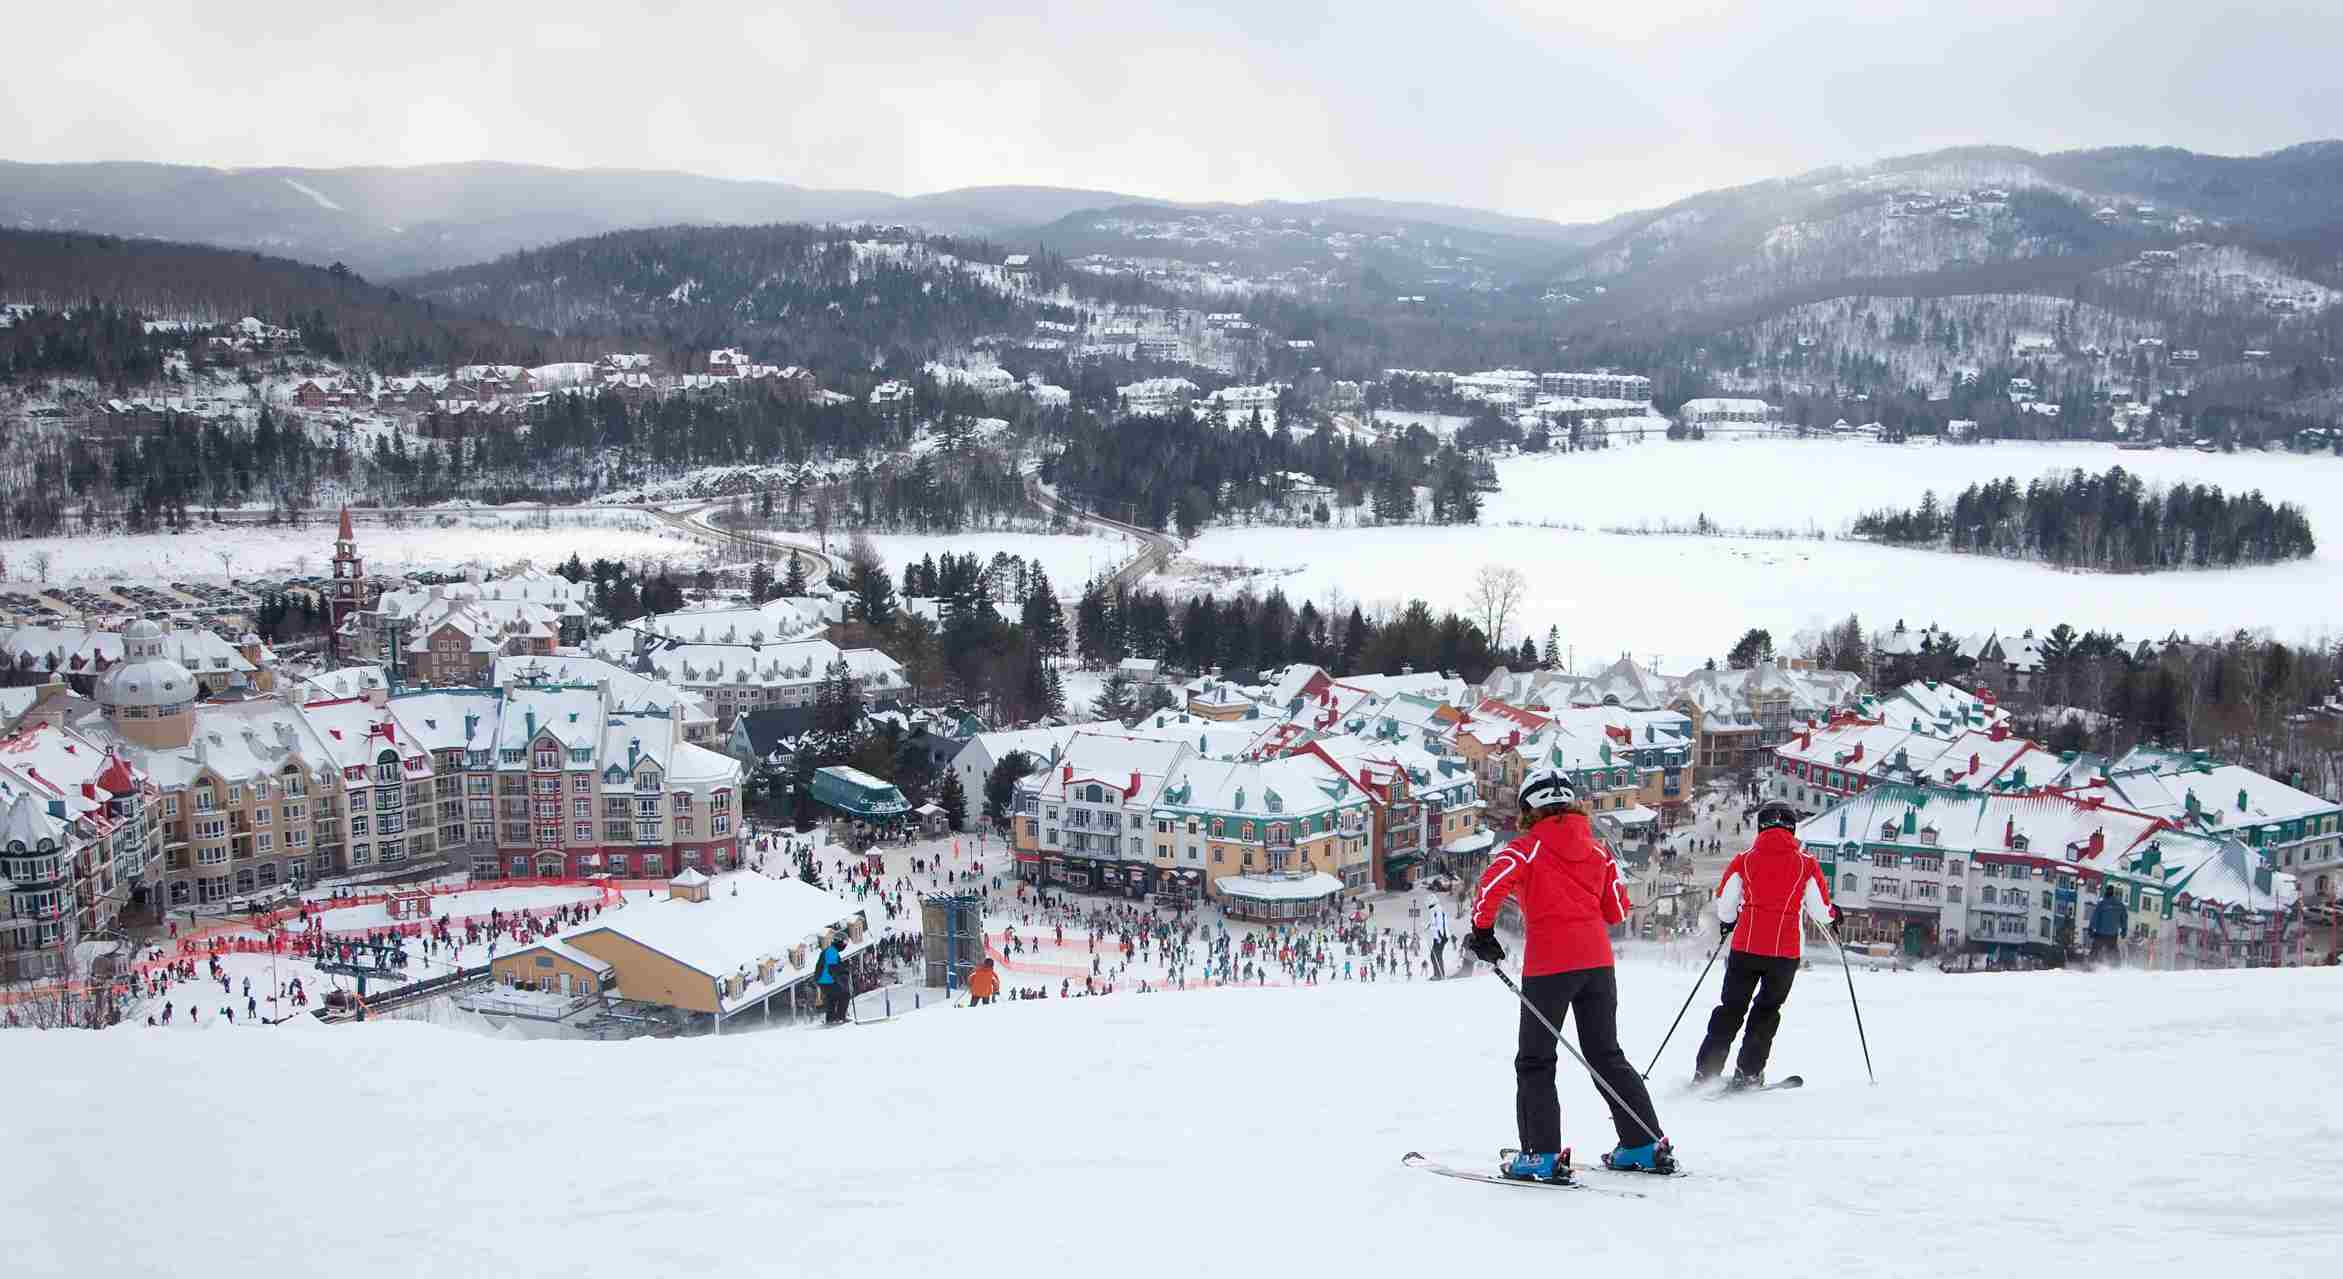 Skiers going down the main slope at Mont-Tremblant Ski Resort